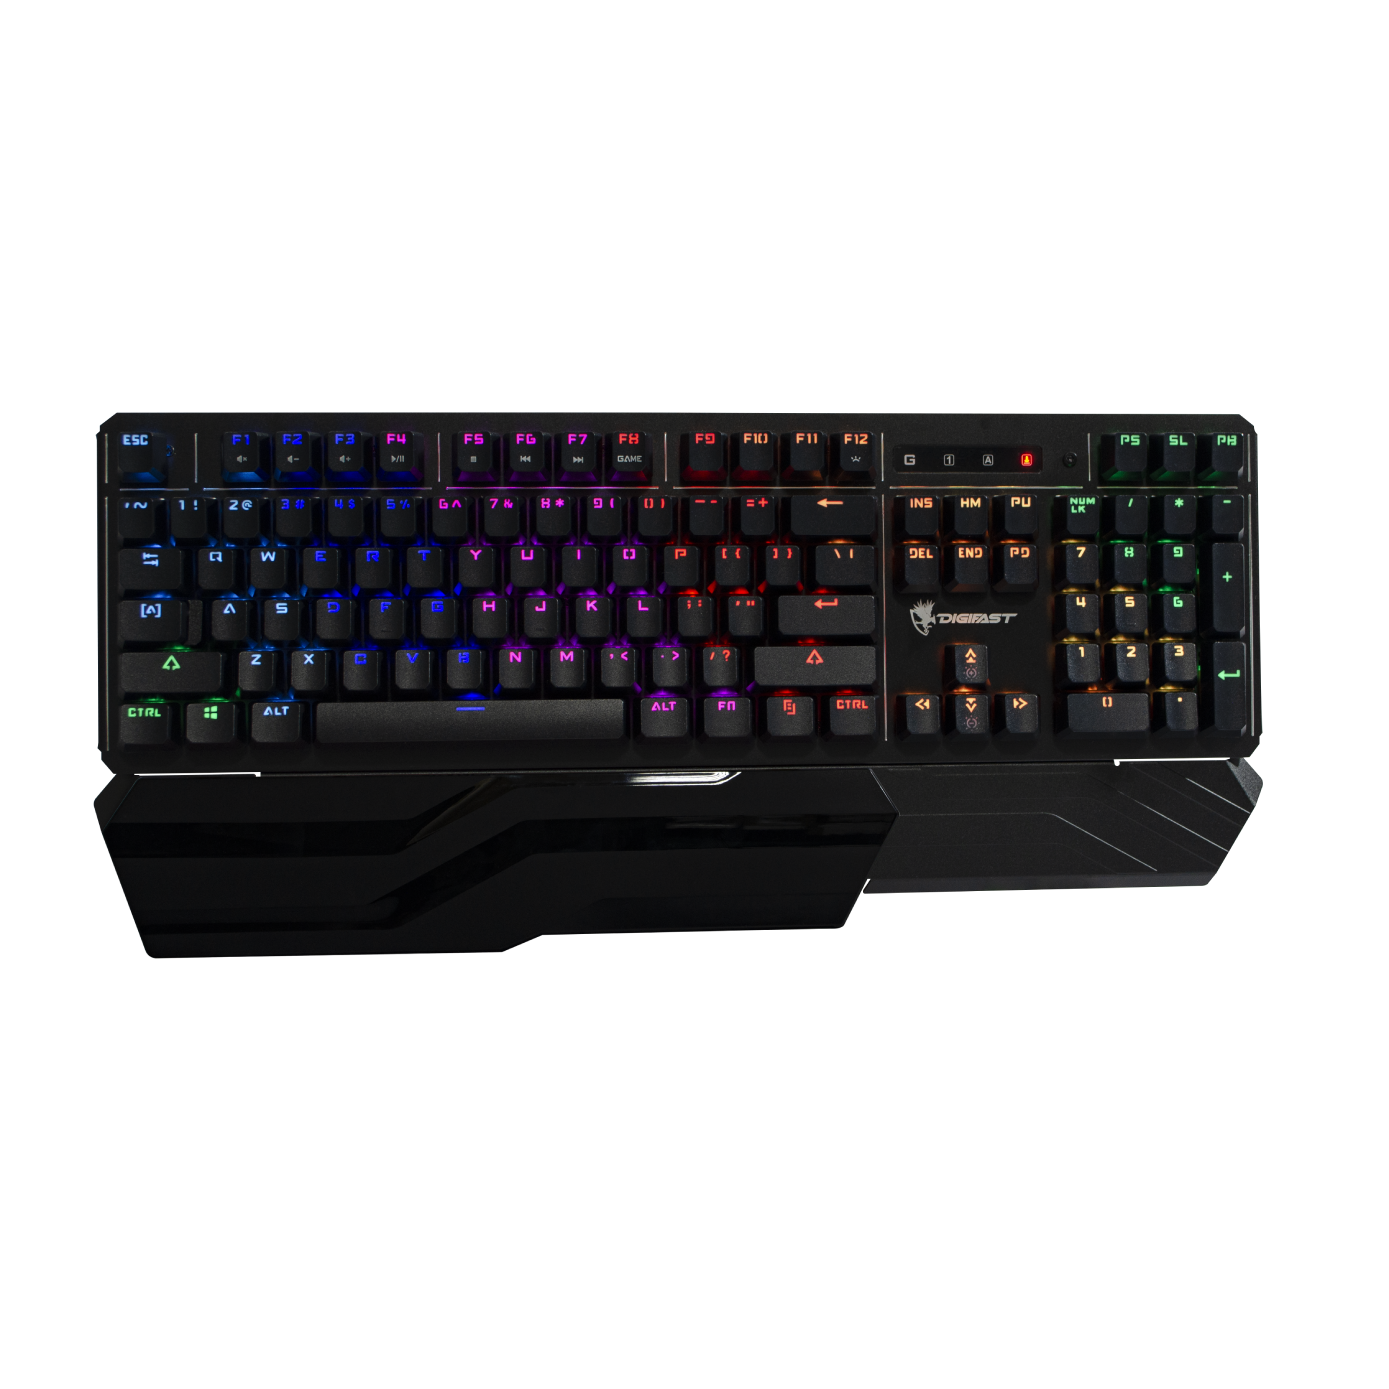 Gaming Keyboard - Digifast Lighning Mechanical RGB Gaming Keyboard With Wrist Rest LK42